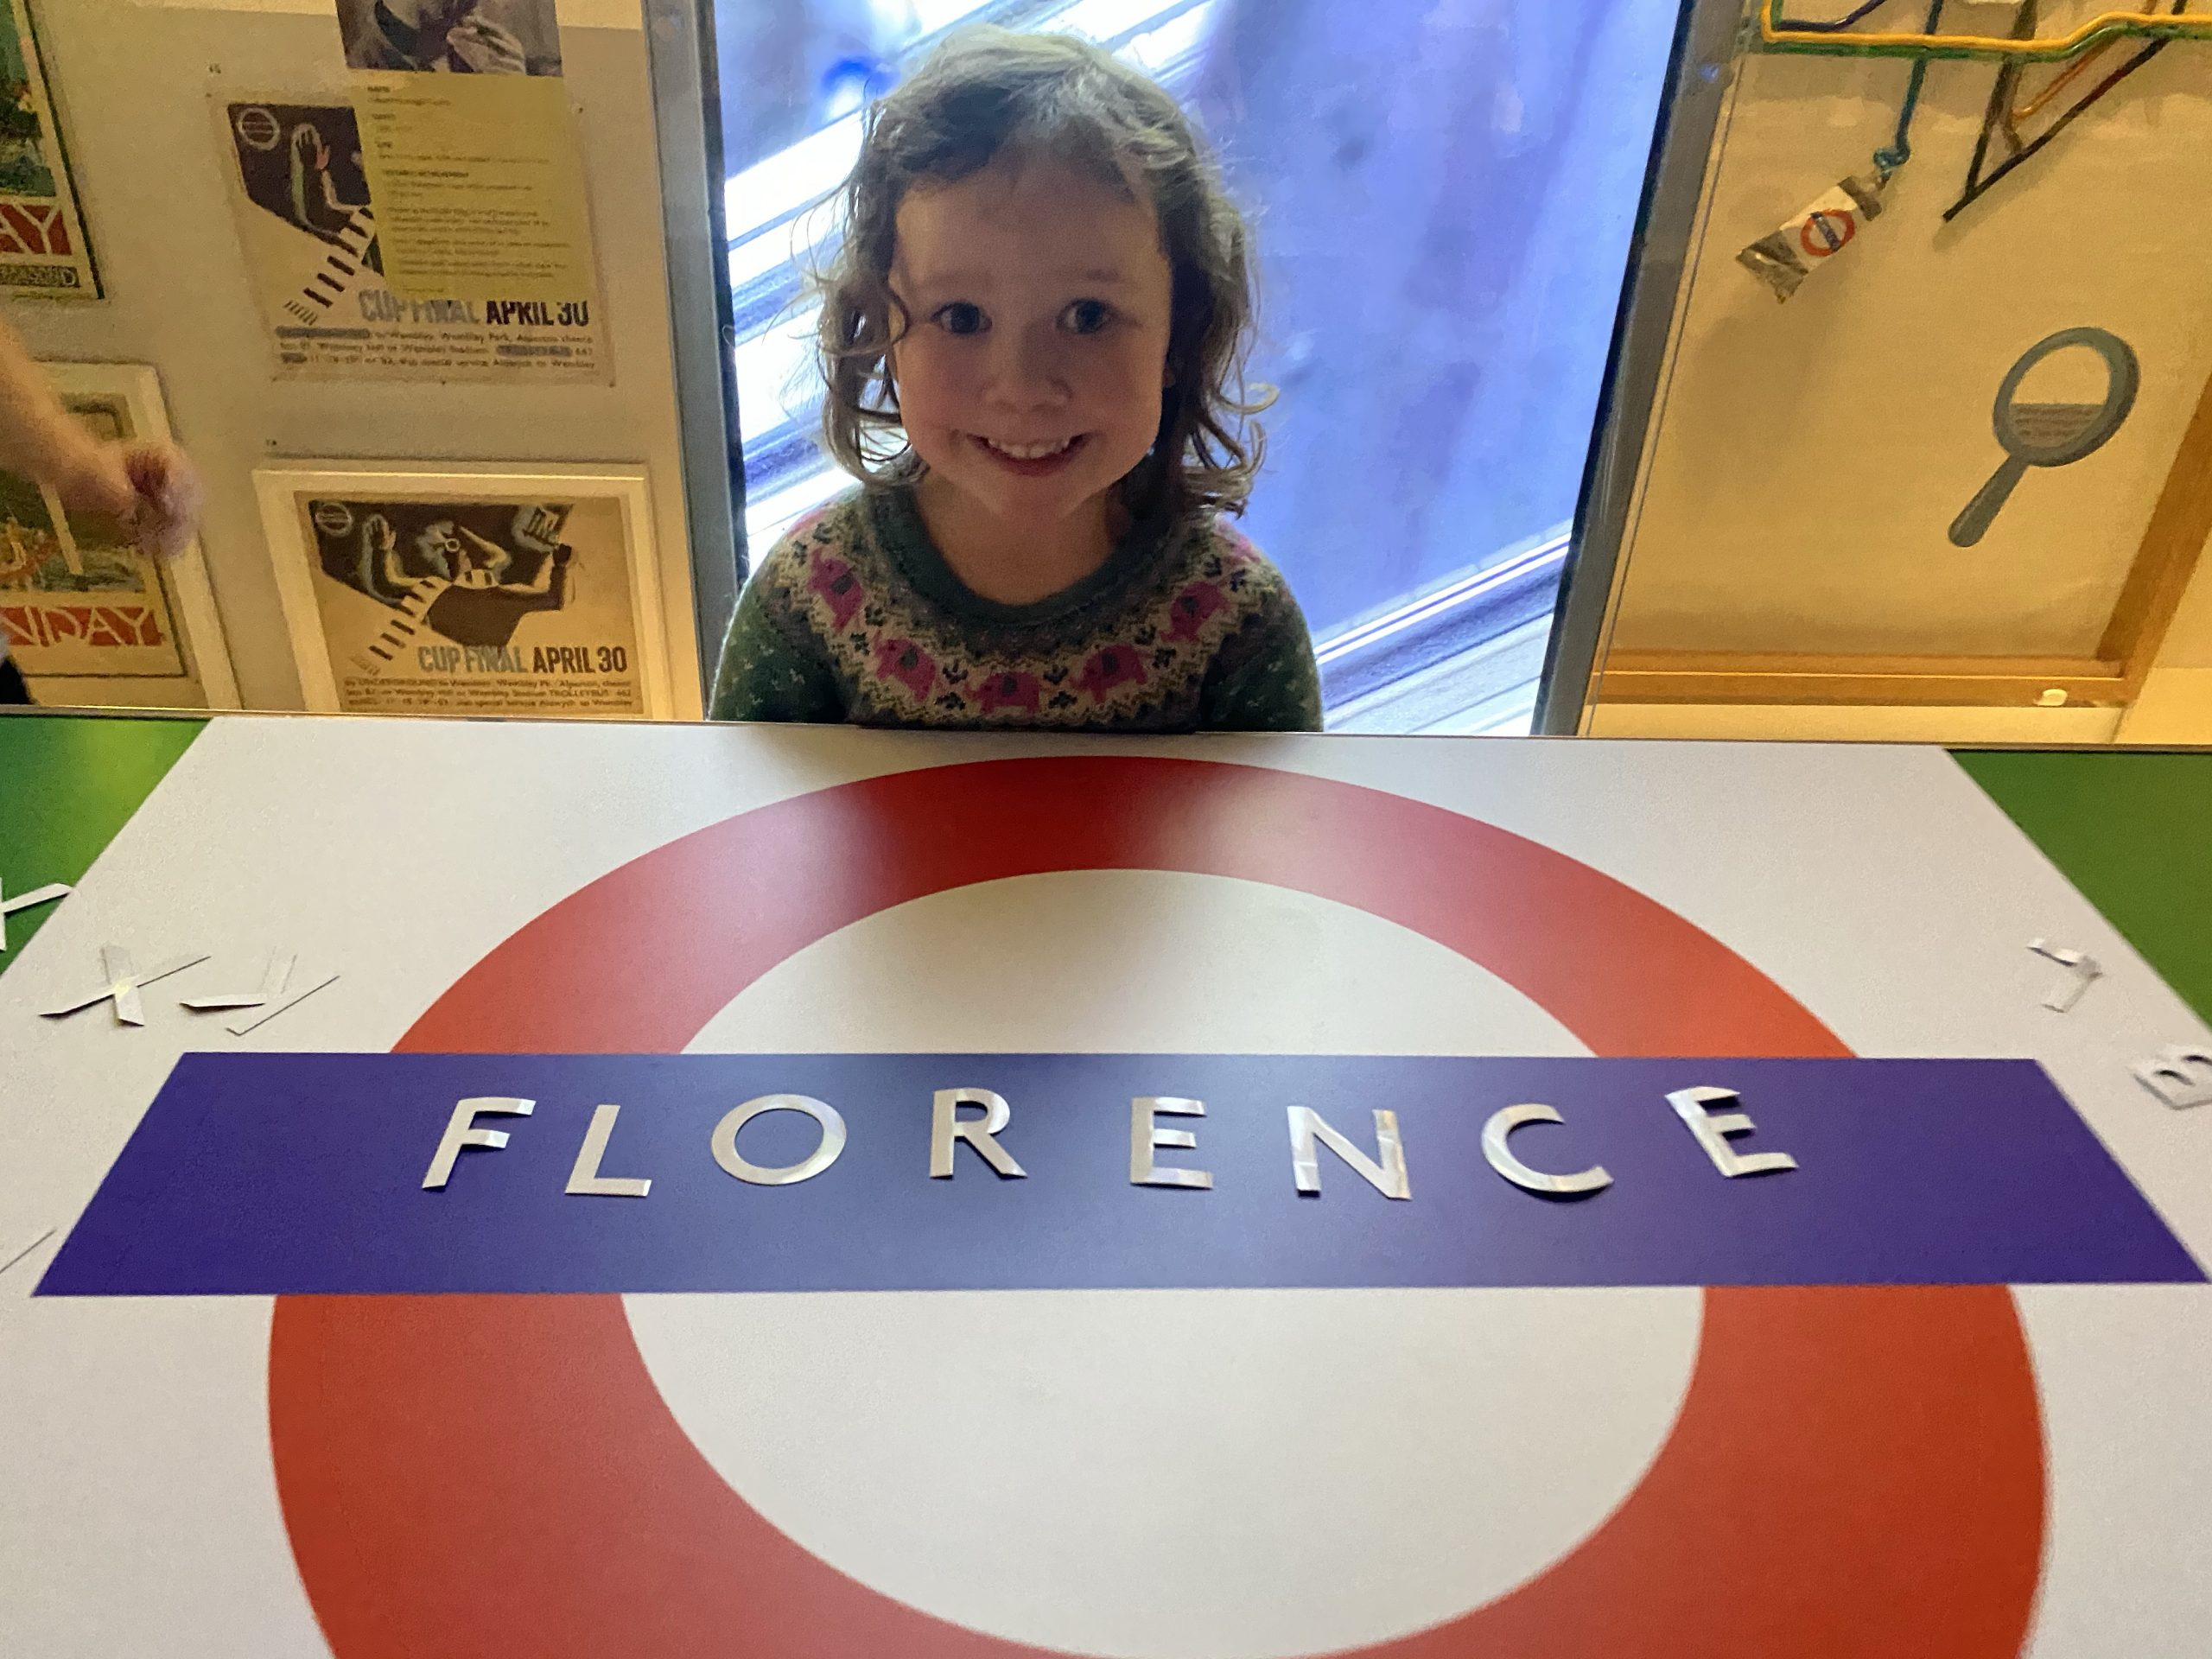 A small child making her own roundel at the London Transport Museum